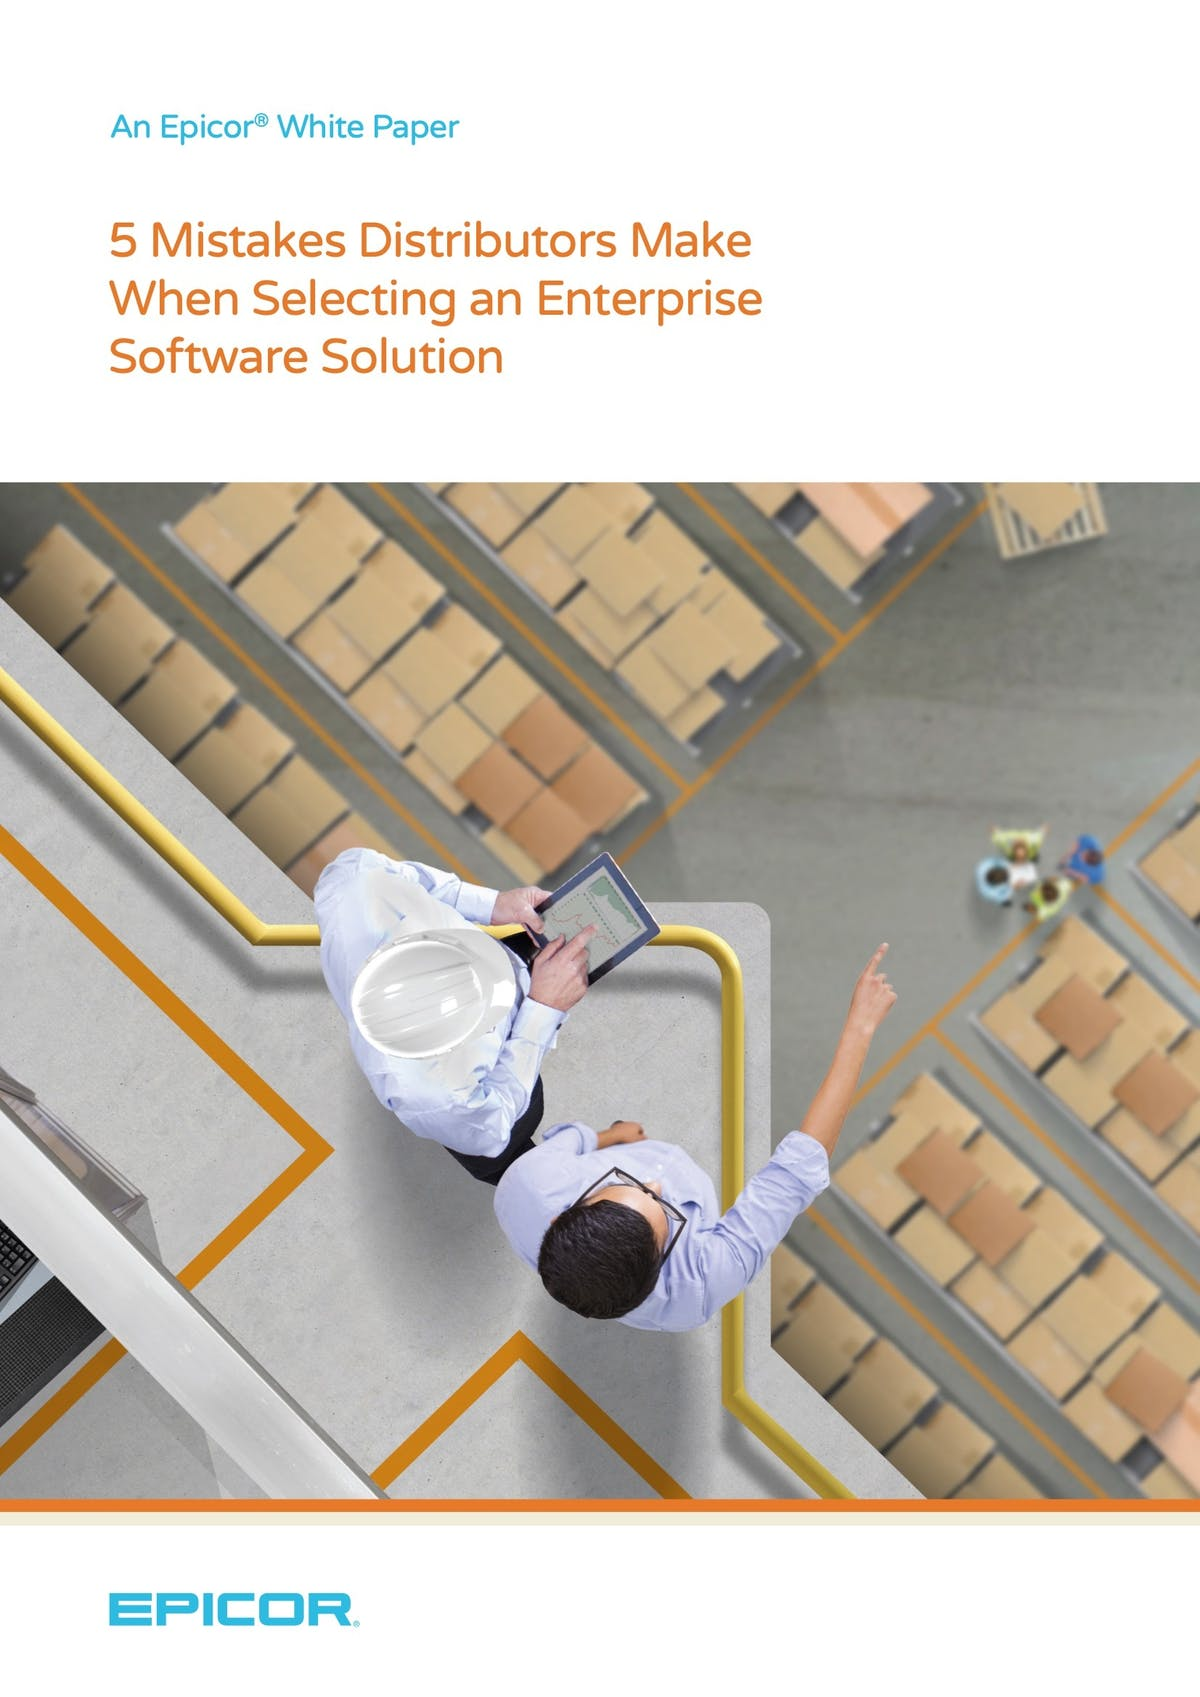 Epicor Eclipse White Paper - 5 Mistakes Distributors Make When Selecting an Enterprise Software Solution